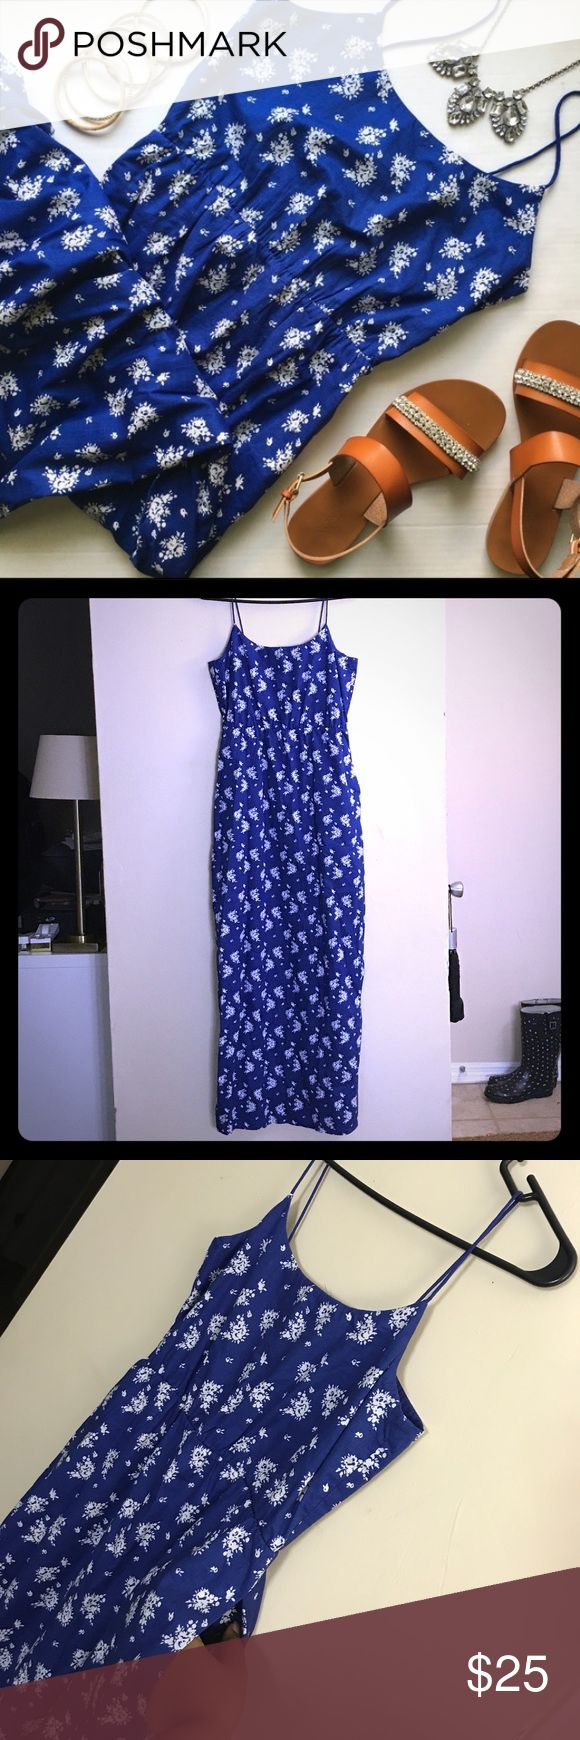 J.CREW FACTORY Blue/White maxi dress with pockets! Blue and white floral printed maxi dress from J. CREW FACTORY with spaghetti straps, a back zipper, and pockets! Worn rarely. J. Crew Factory Dresses Maxi